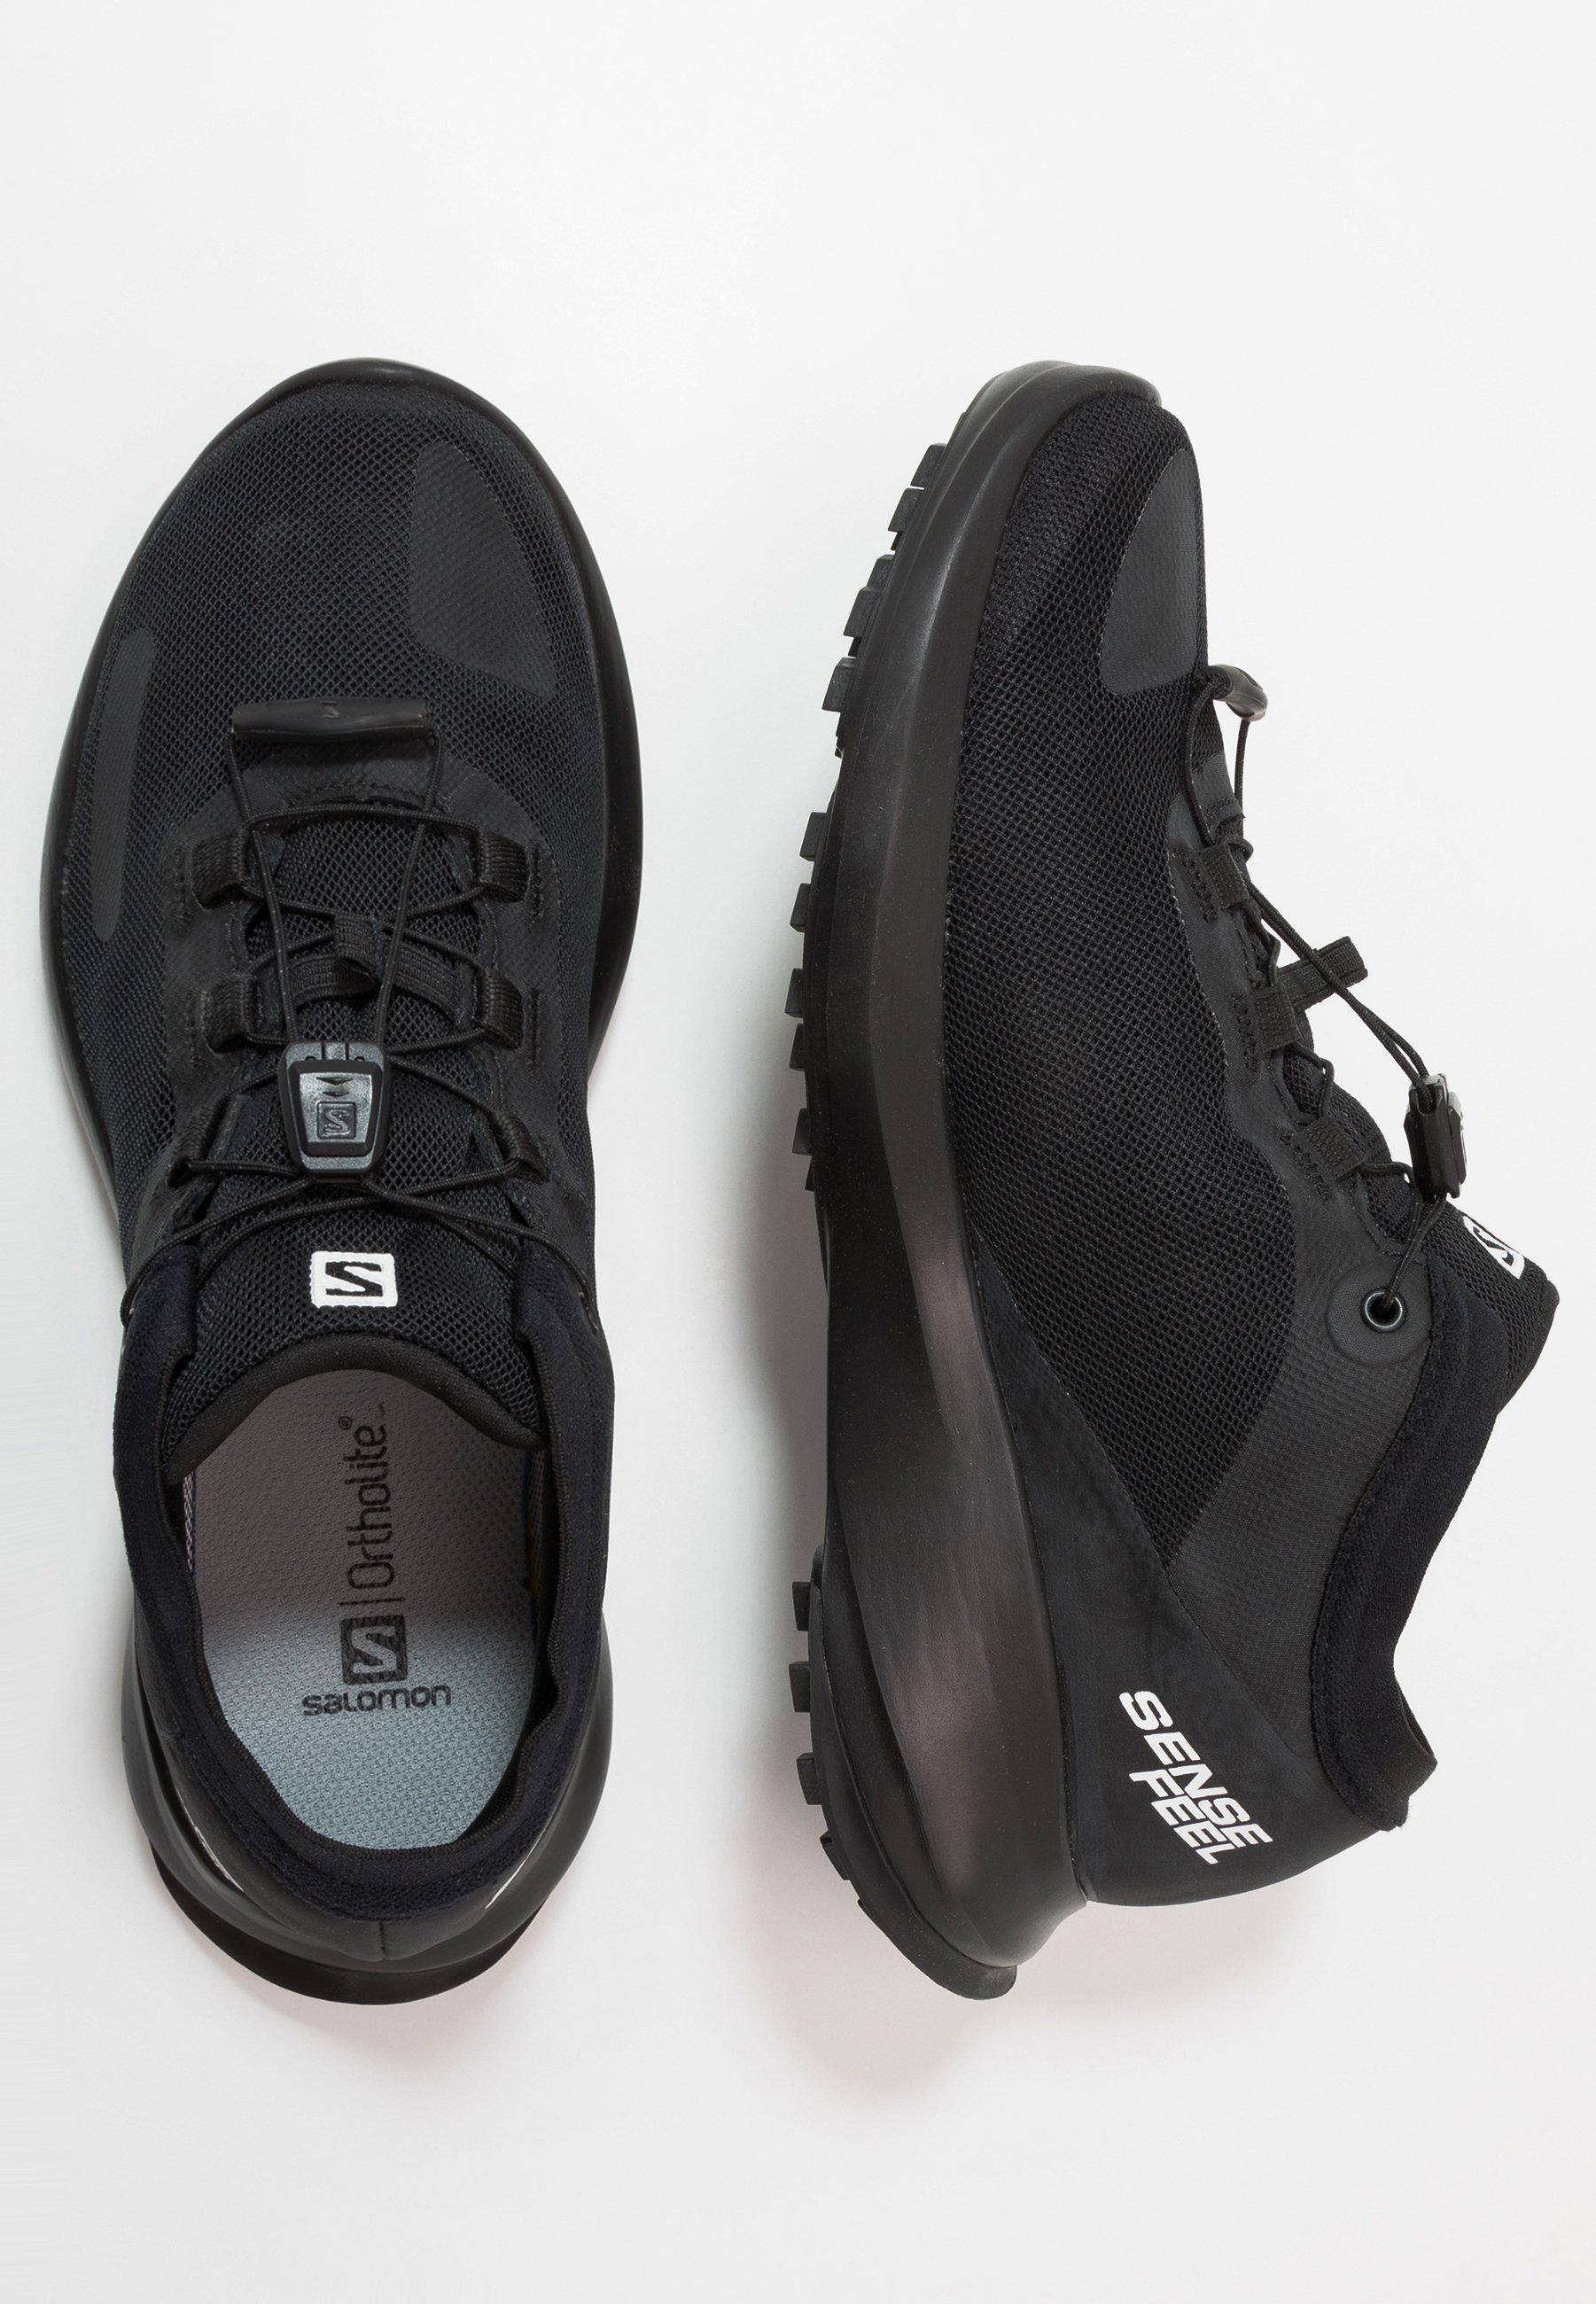 Salomon Sense Feel Gtx - Löparskor Terräng Black